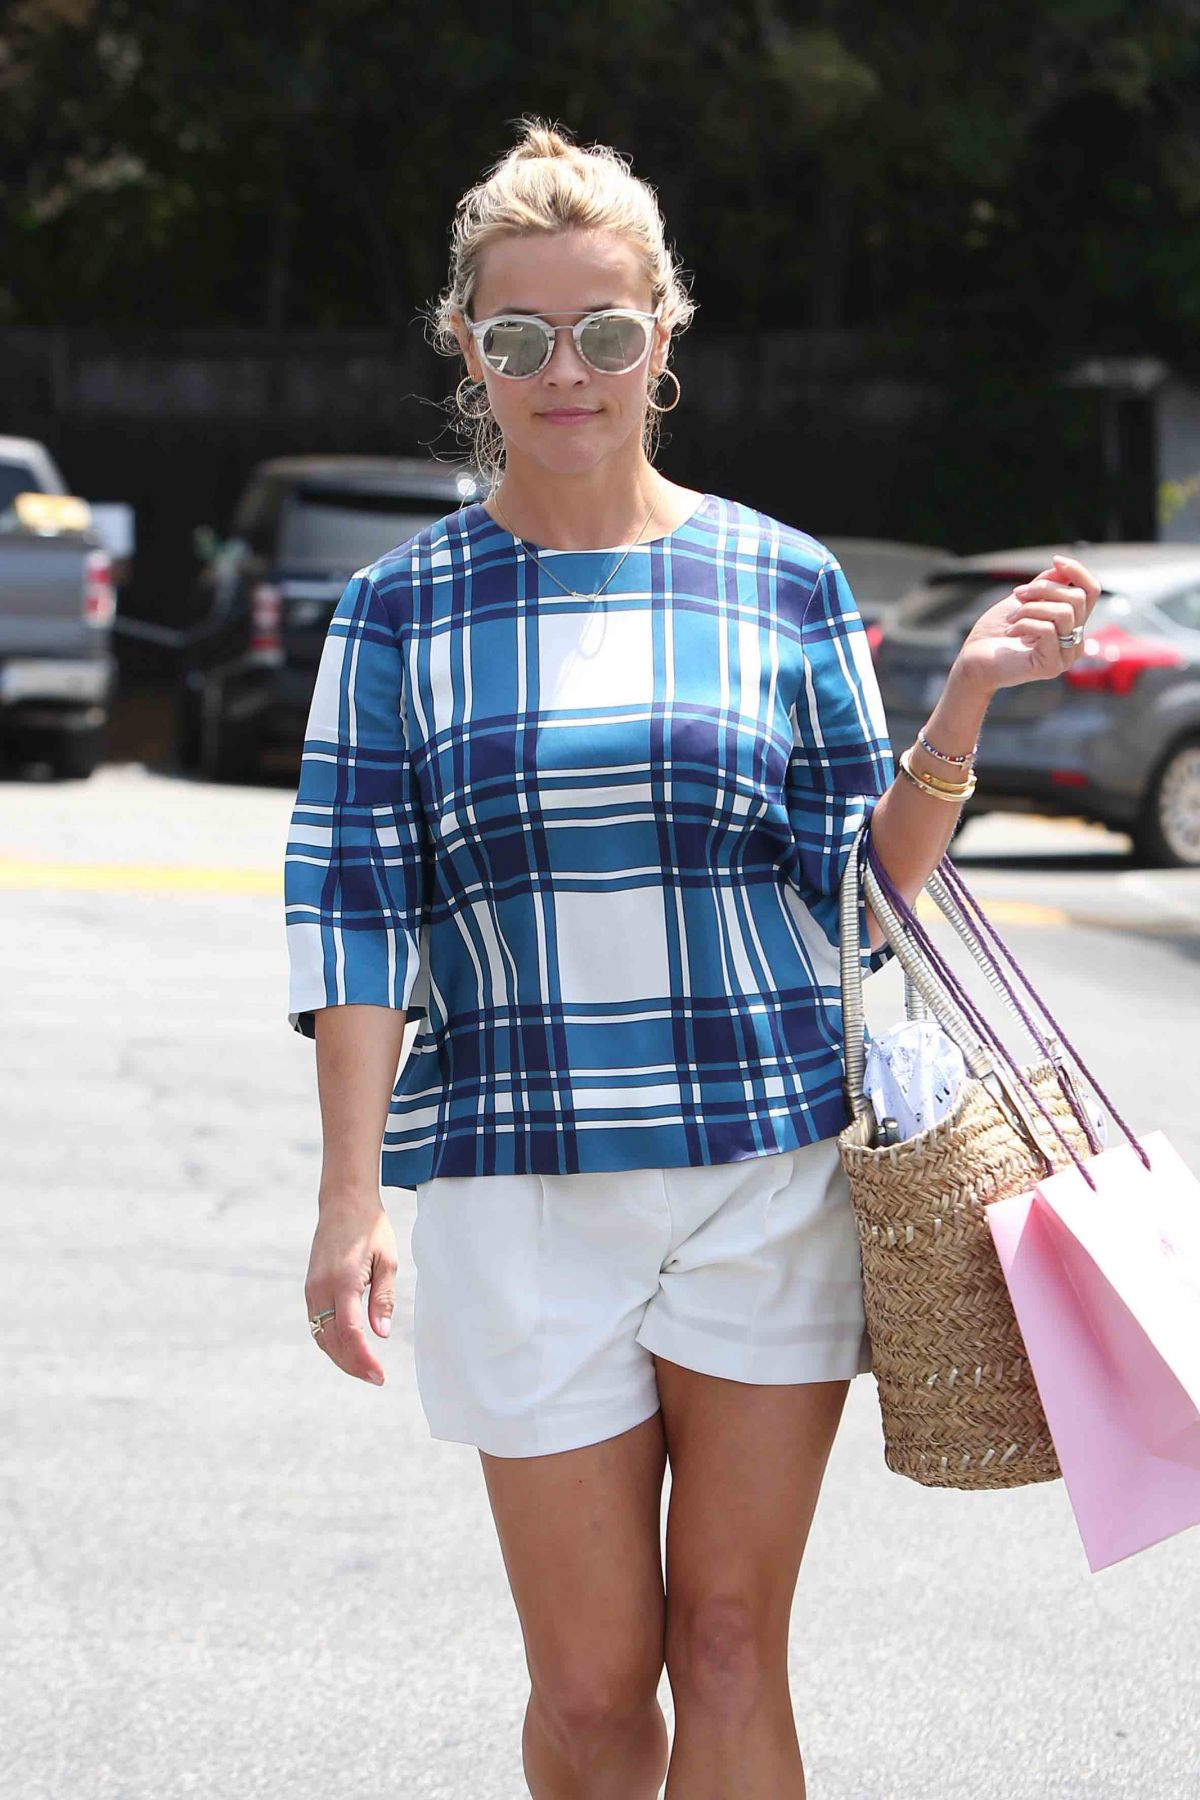 REESE WITHERSPOON in Shorts Out in Brentwood 08/05/2016